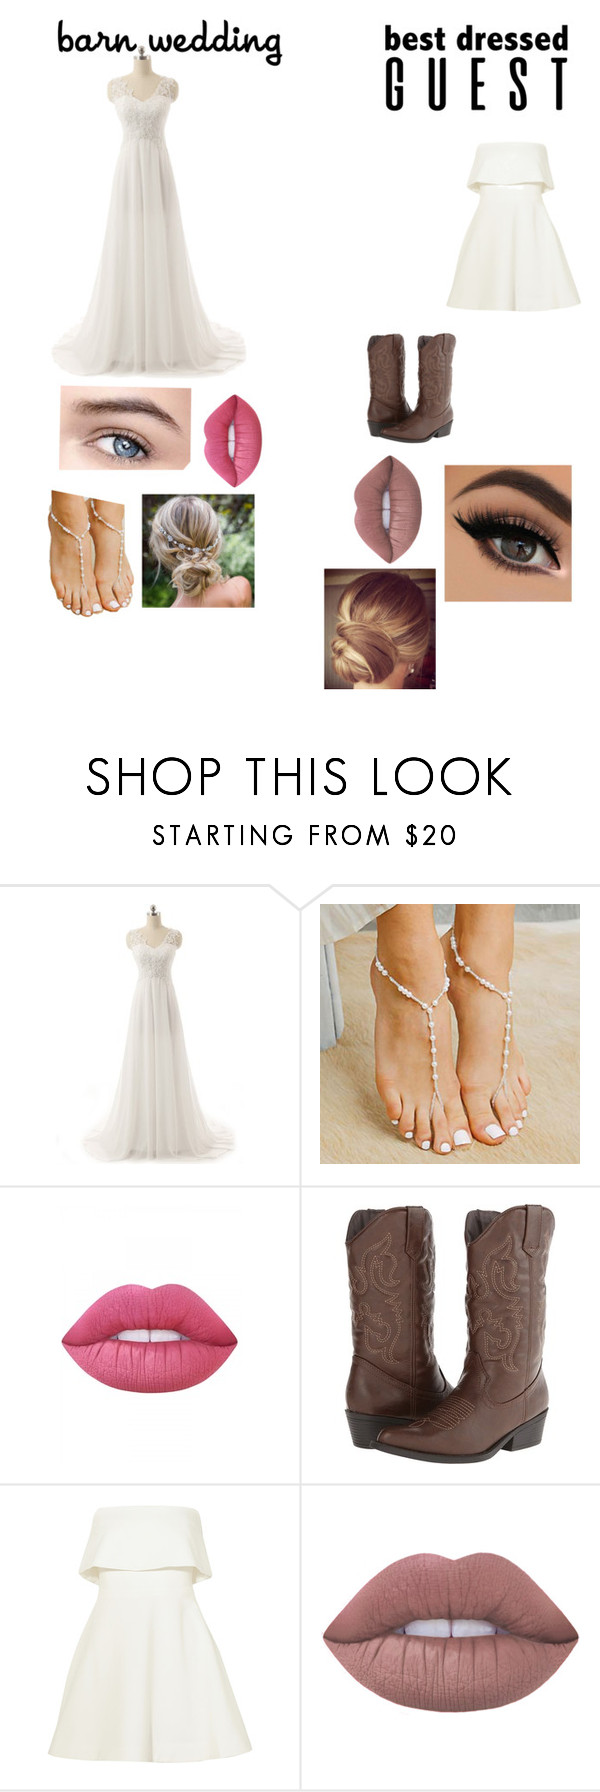 """""""Wedding bride and best dressed"""" by basic-zell ❤ liked on Polyvore featuring Forever Soles, Lime Crime, Madden Girl, Elizabeth and James, bestdressedguest and barnwedding"""